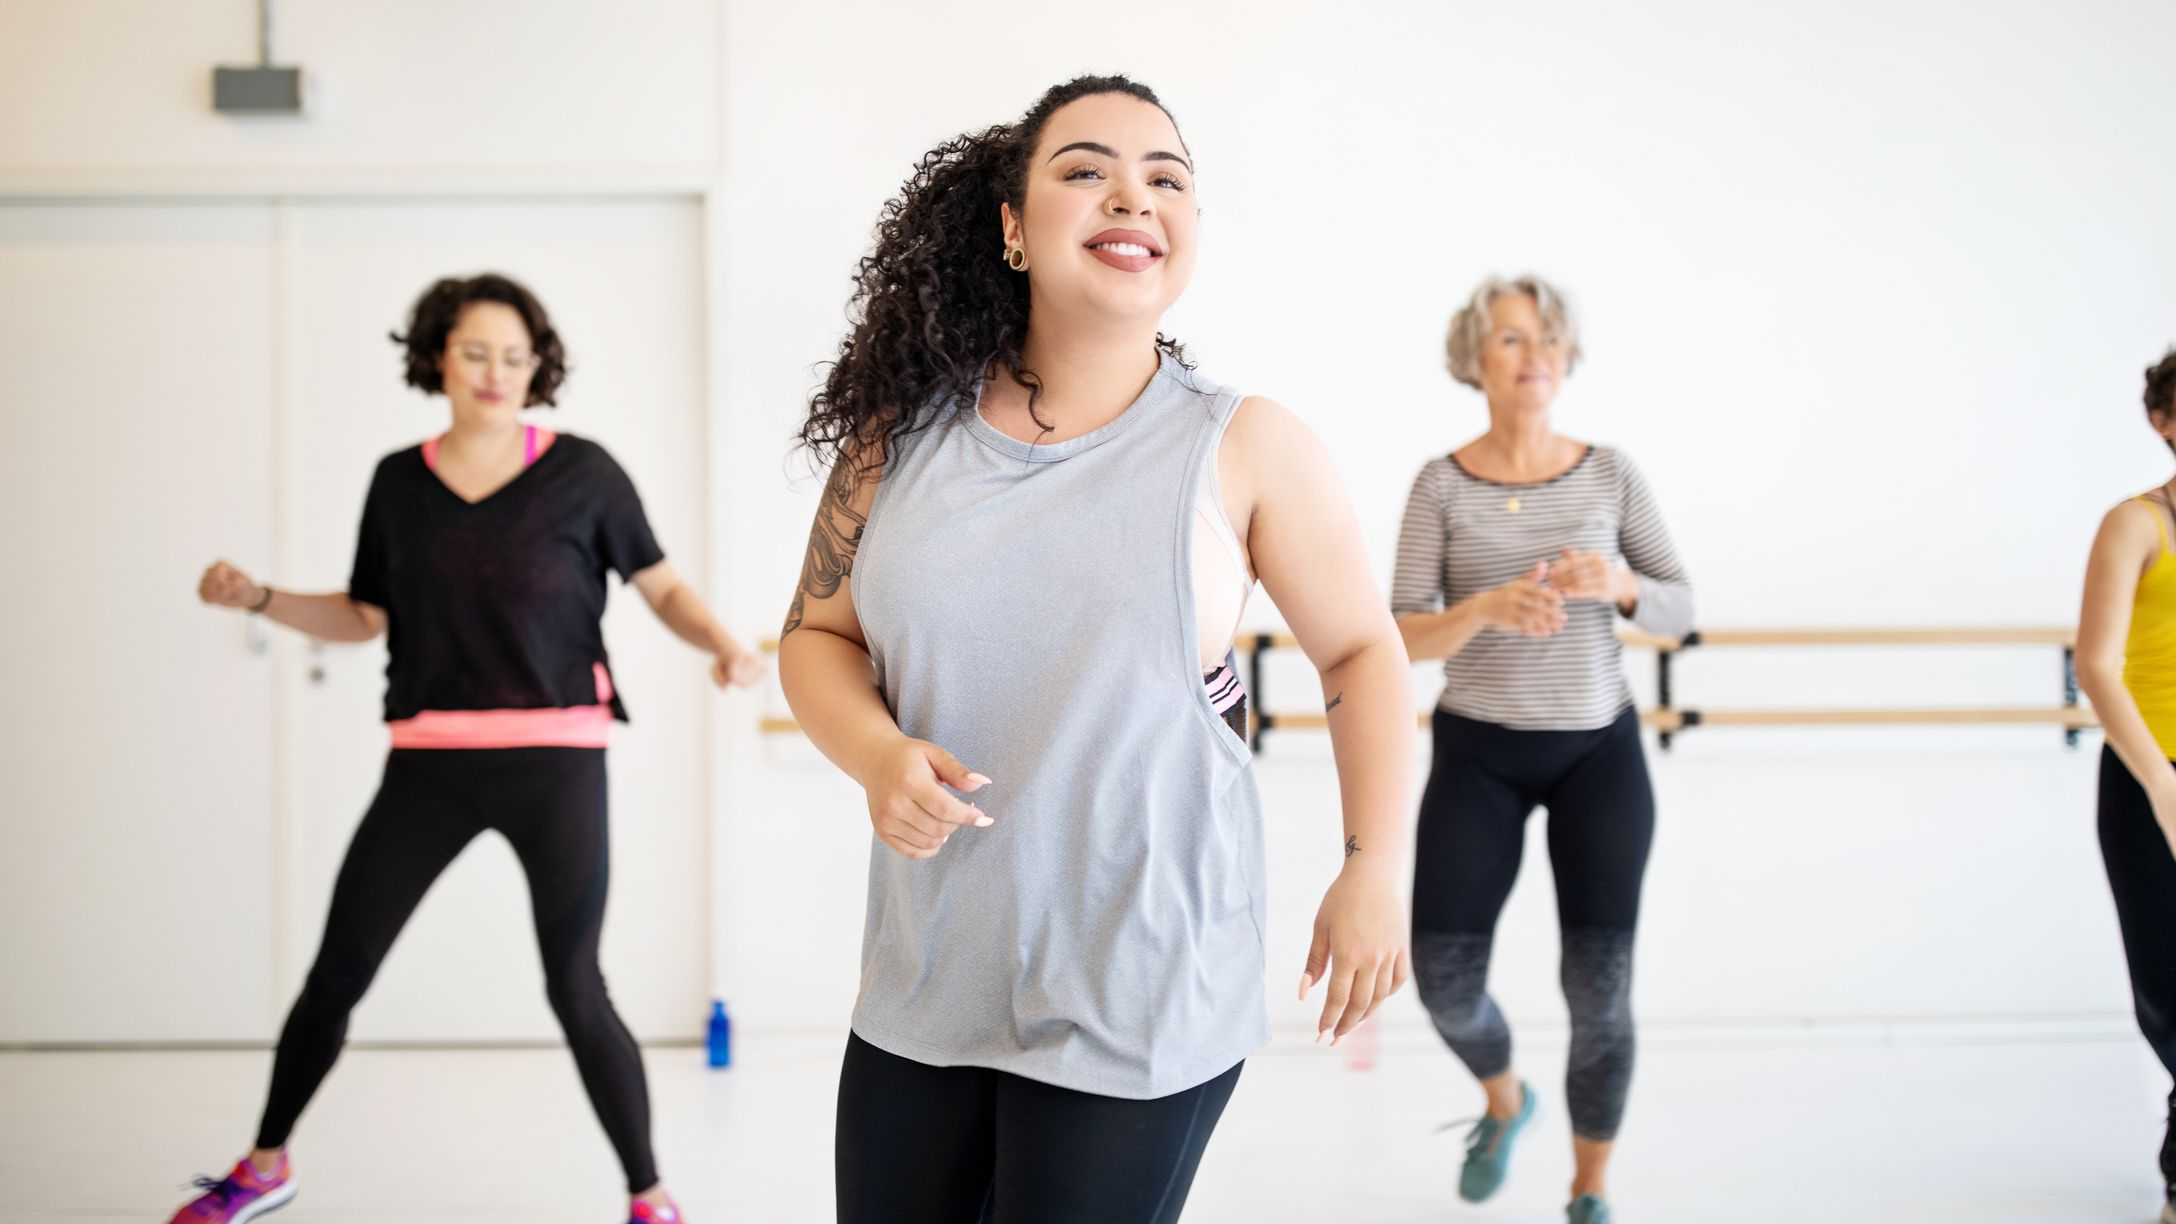 The 6 Best Weight Loss Support Groups Of 2020